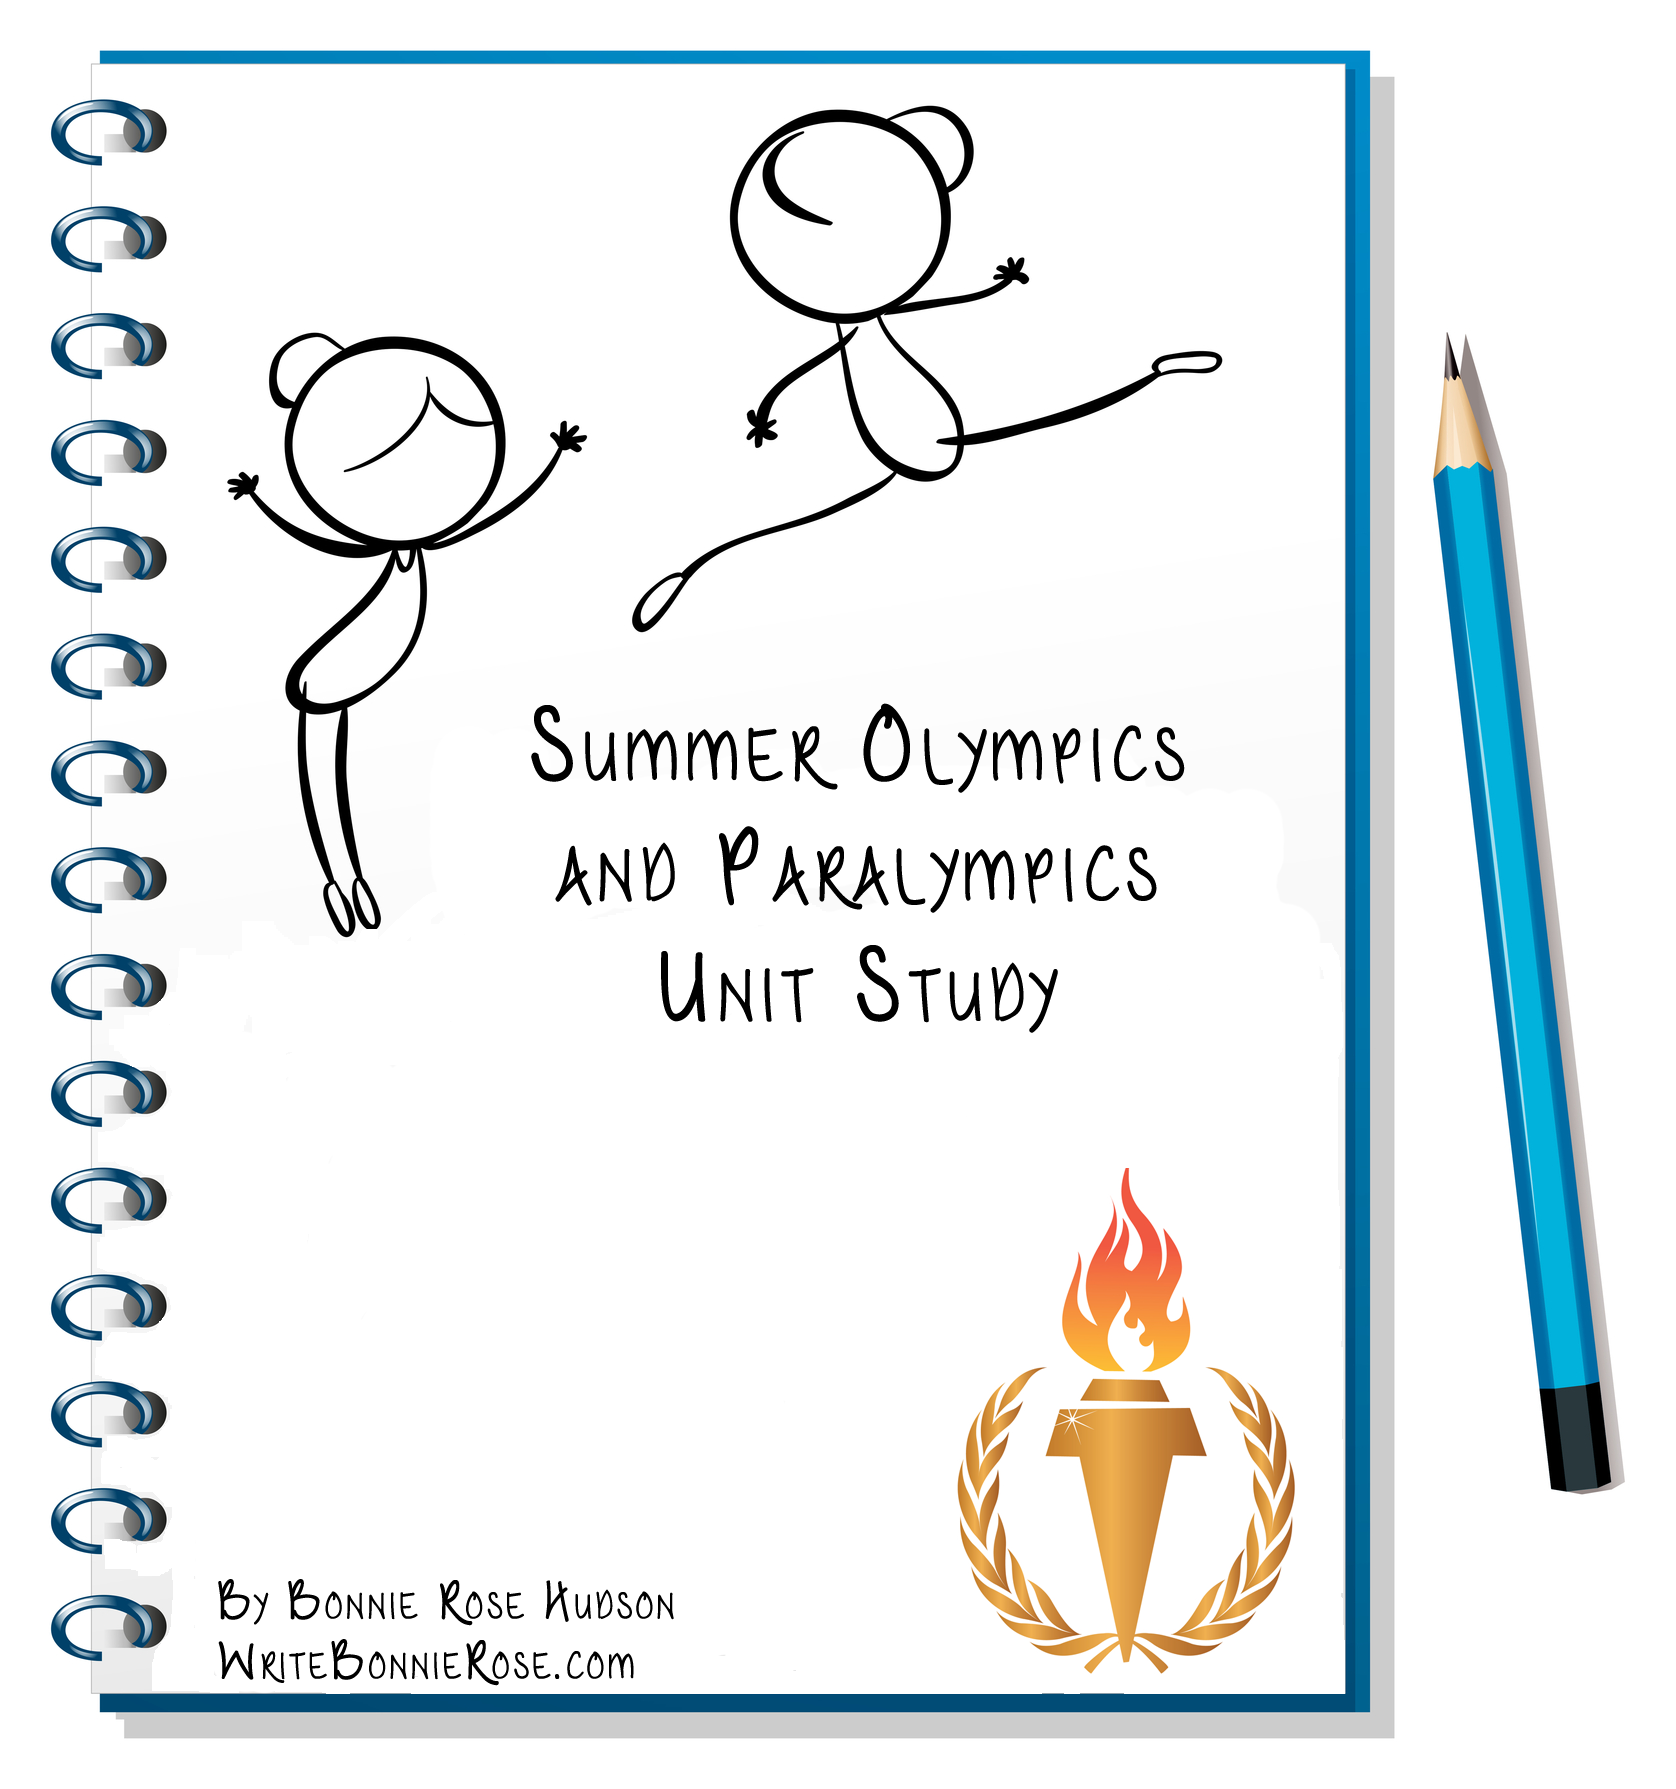 Summer Olympics and Paralympics Unit Study (e-book)